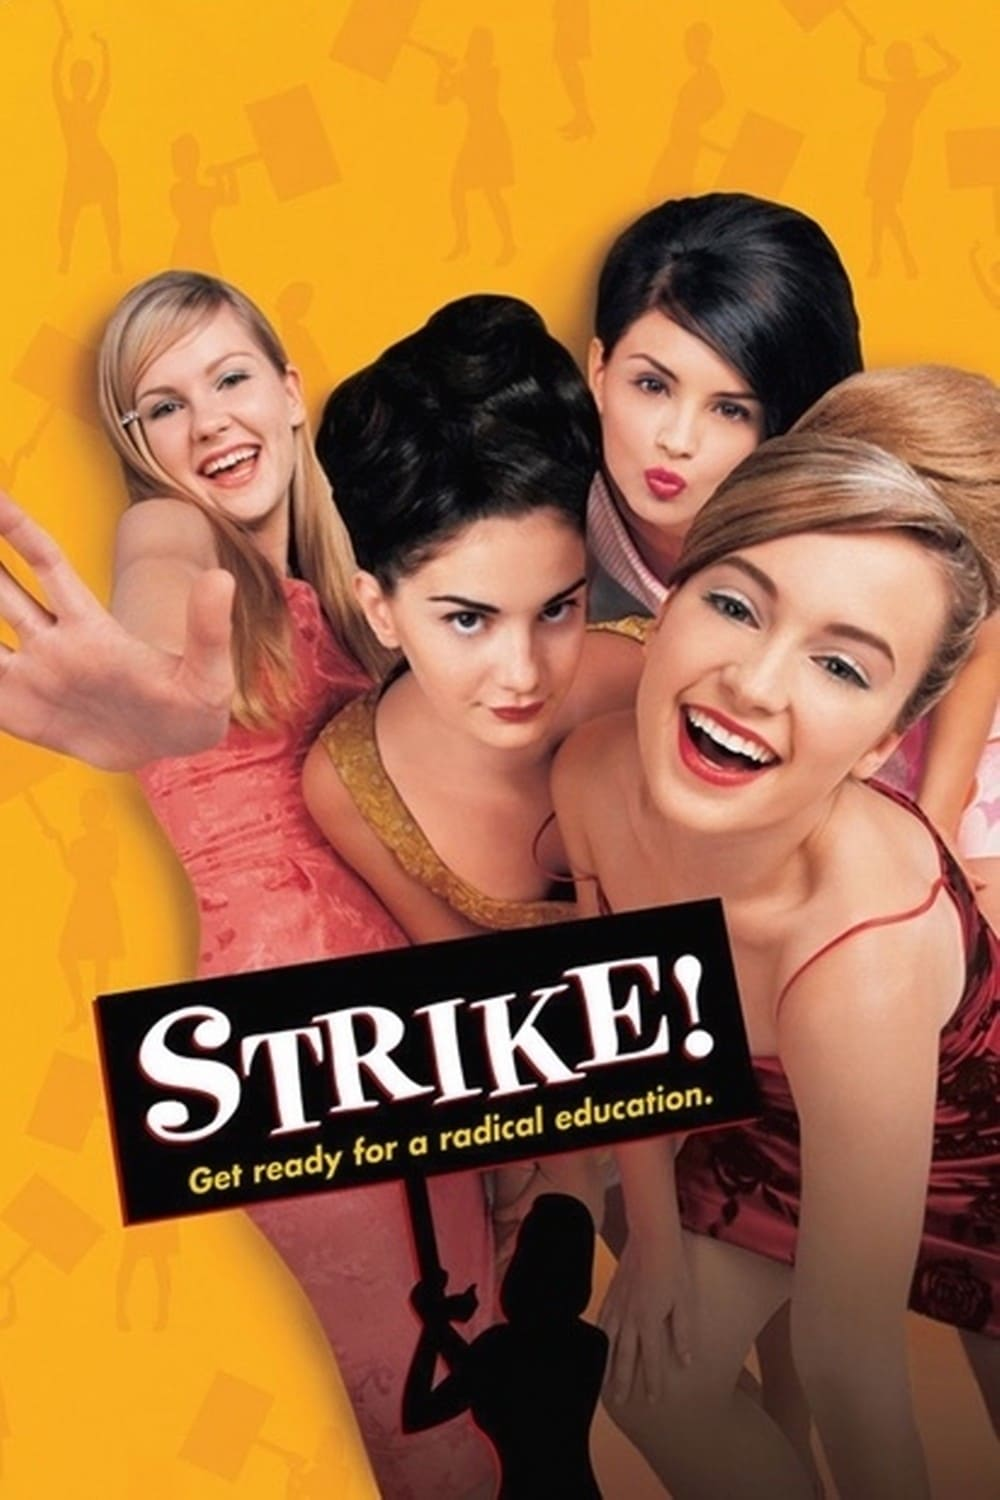 image for Strike!